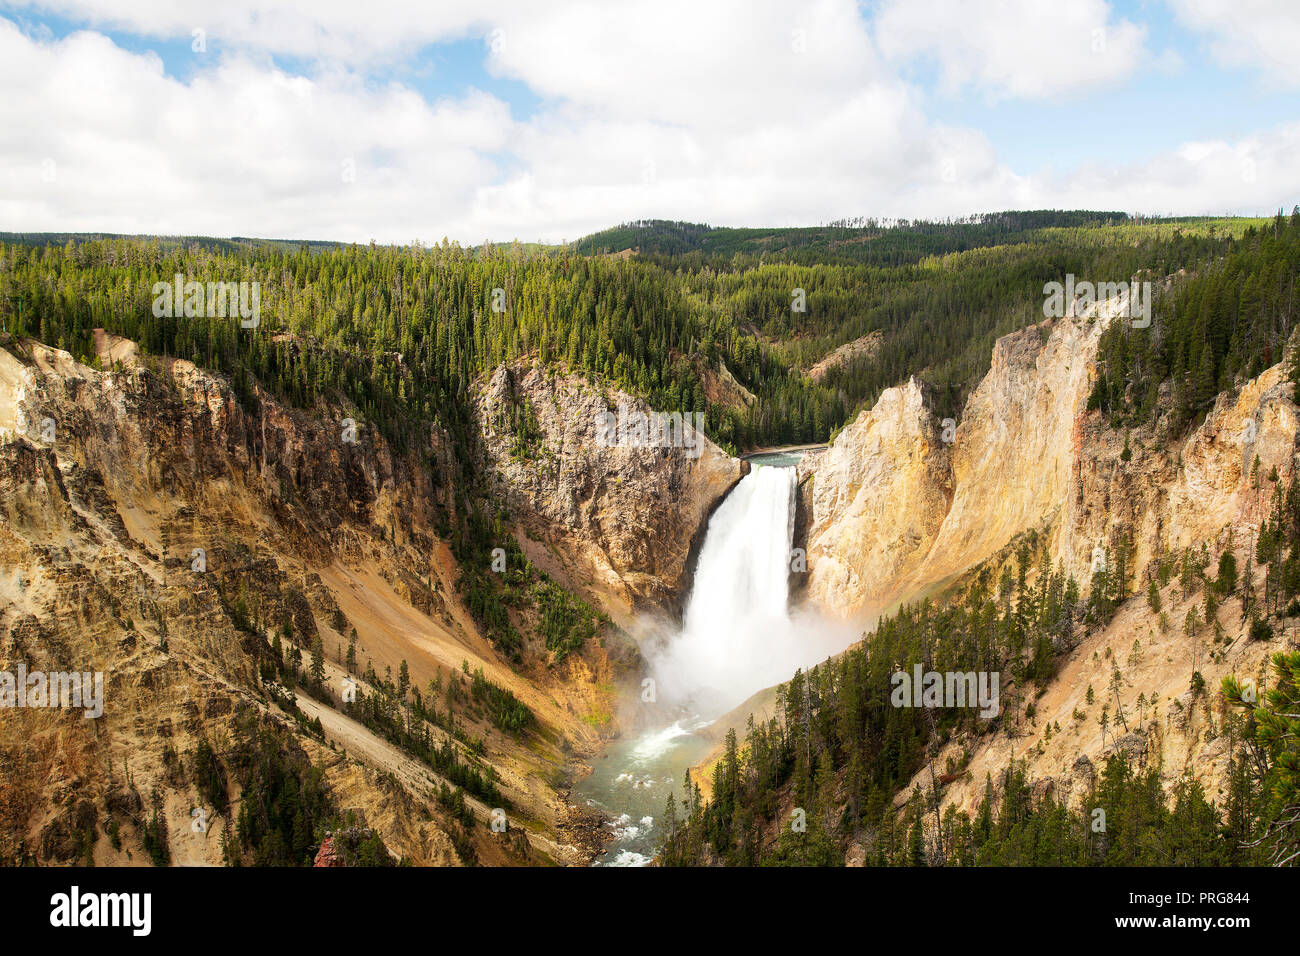 Lower Falls du Grand Canyon de Yellowstone au Parc National de Yellowstone. Photo Stock